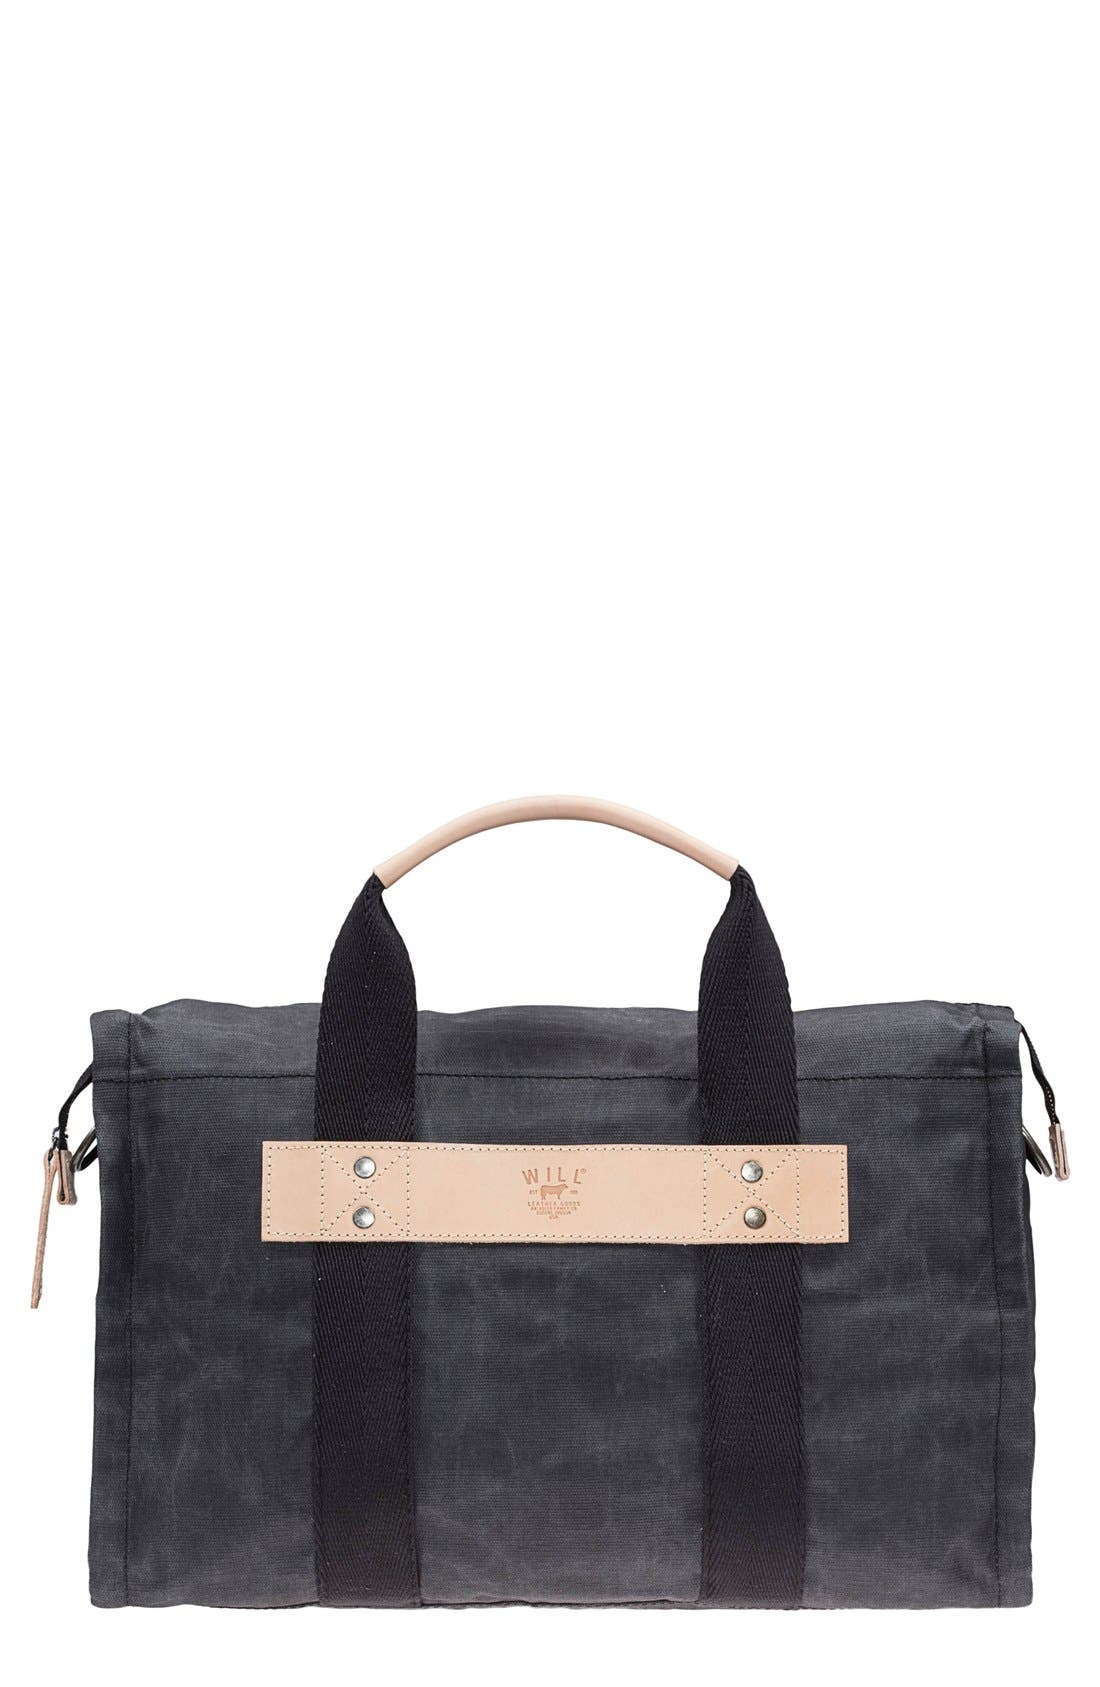 Main Image - Will Leather Goods Canvas Duffel Bag